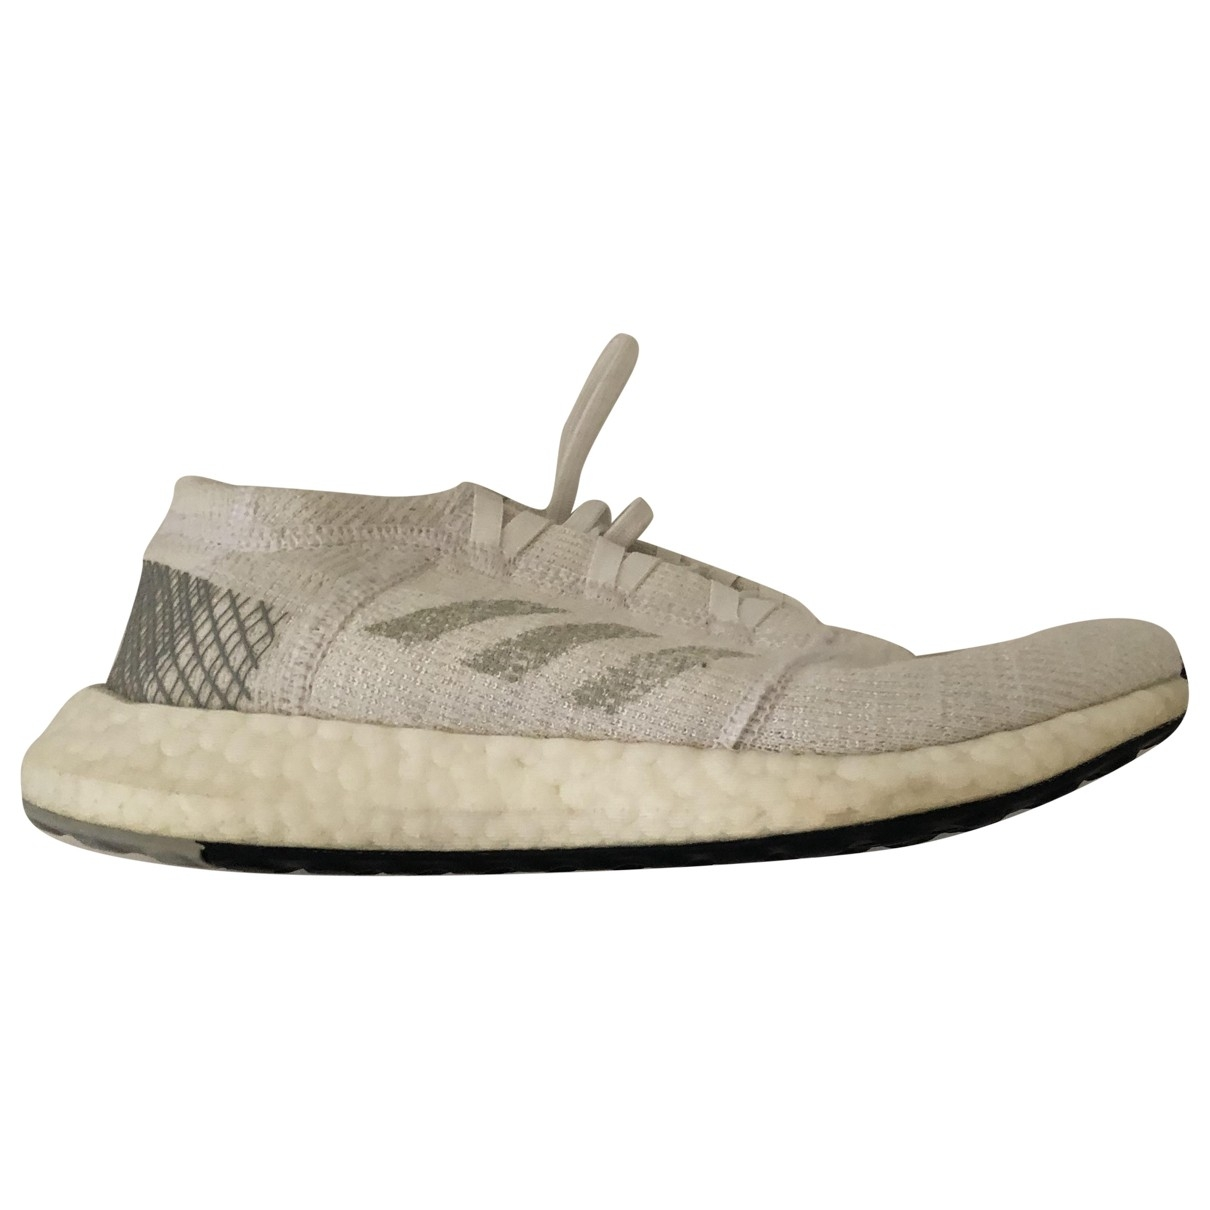 Adidas PureBOOST White Trainers for Women 5 UK